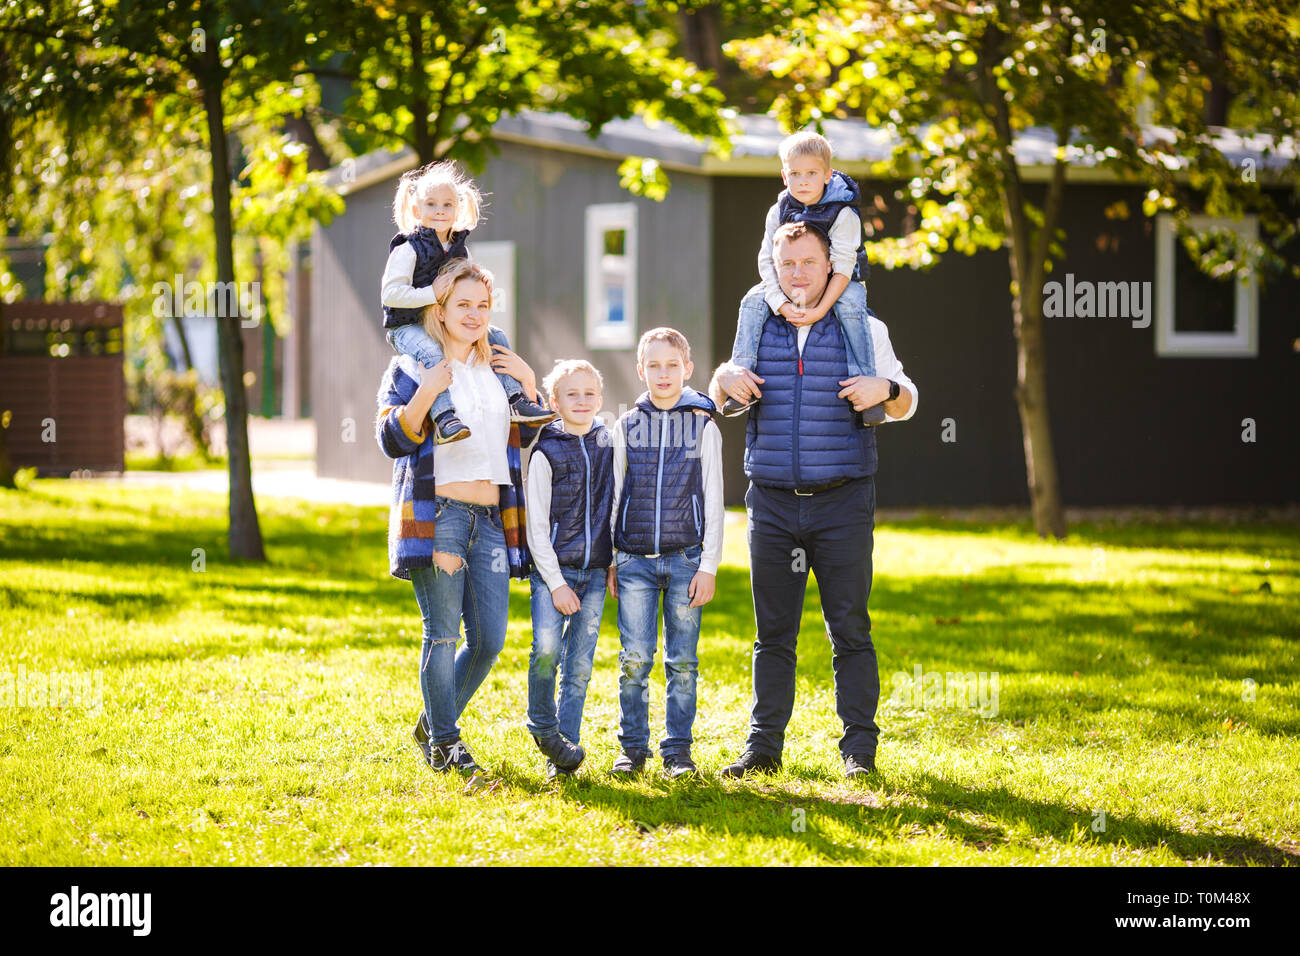 40b888e8278fa Theme family active leisure outside in nature. large Caucasian family with  four children. Mom and Dad actively relaxing. enjoy life in park near house